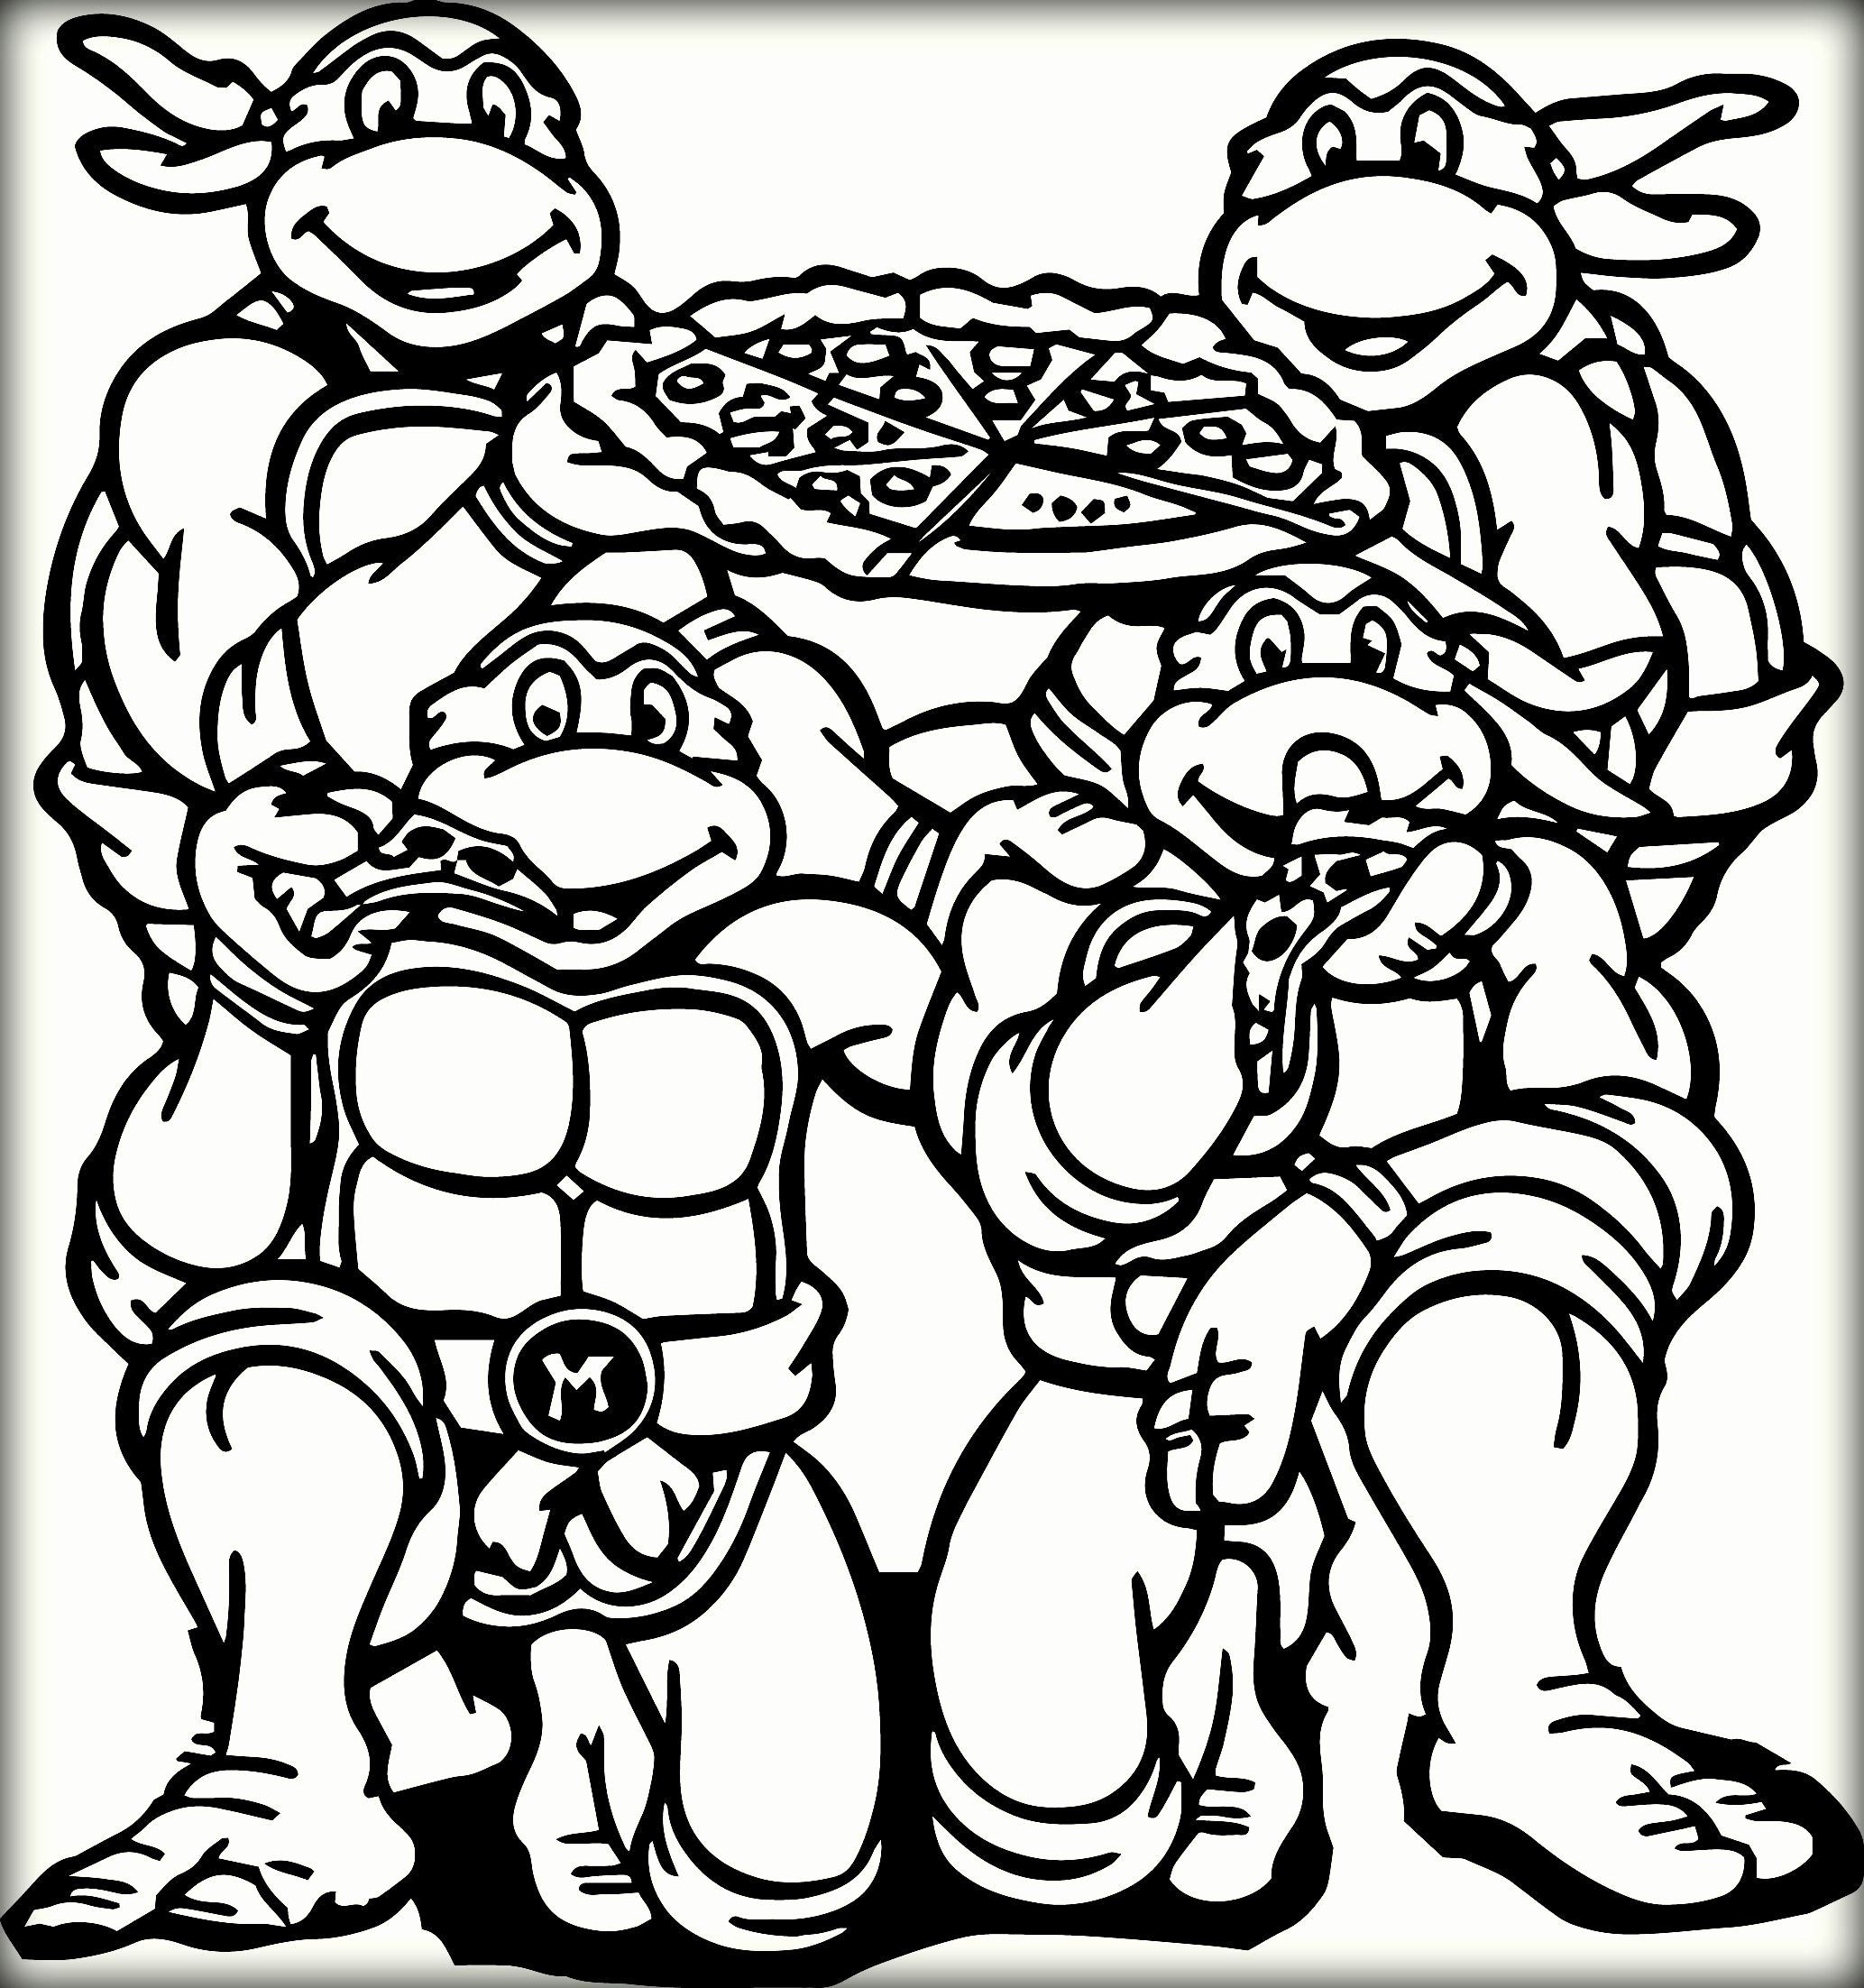 - 32 Ninja Turtle Coloring Page In 2020 (With Images) Ninja Turtle